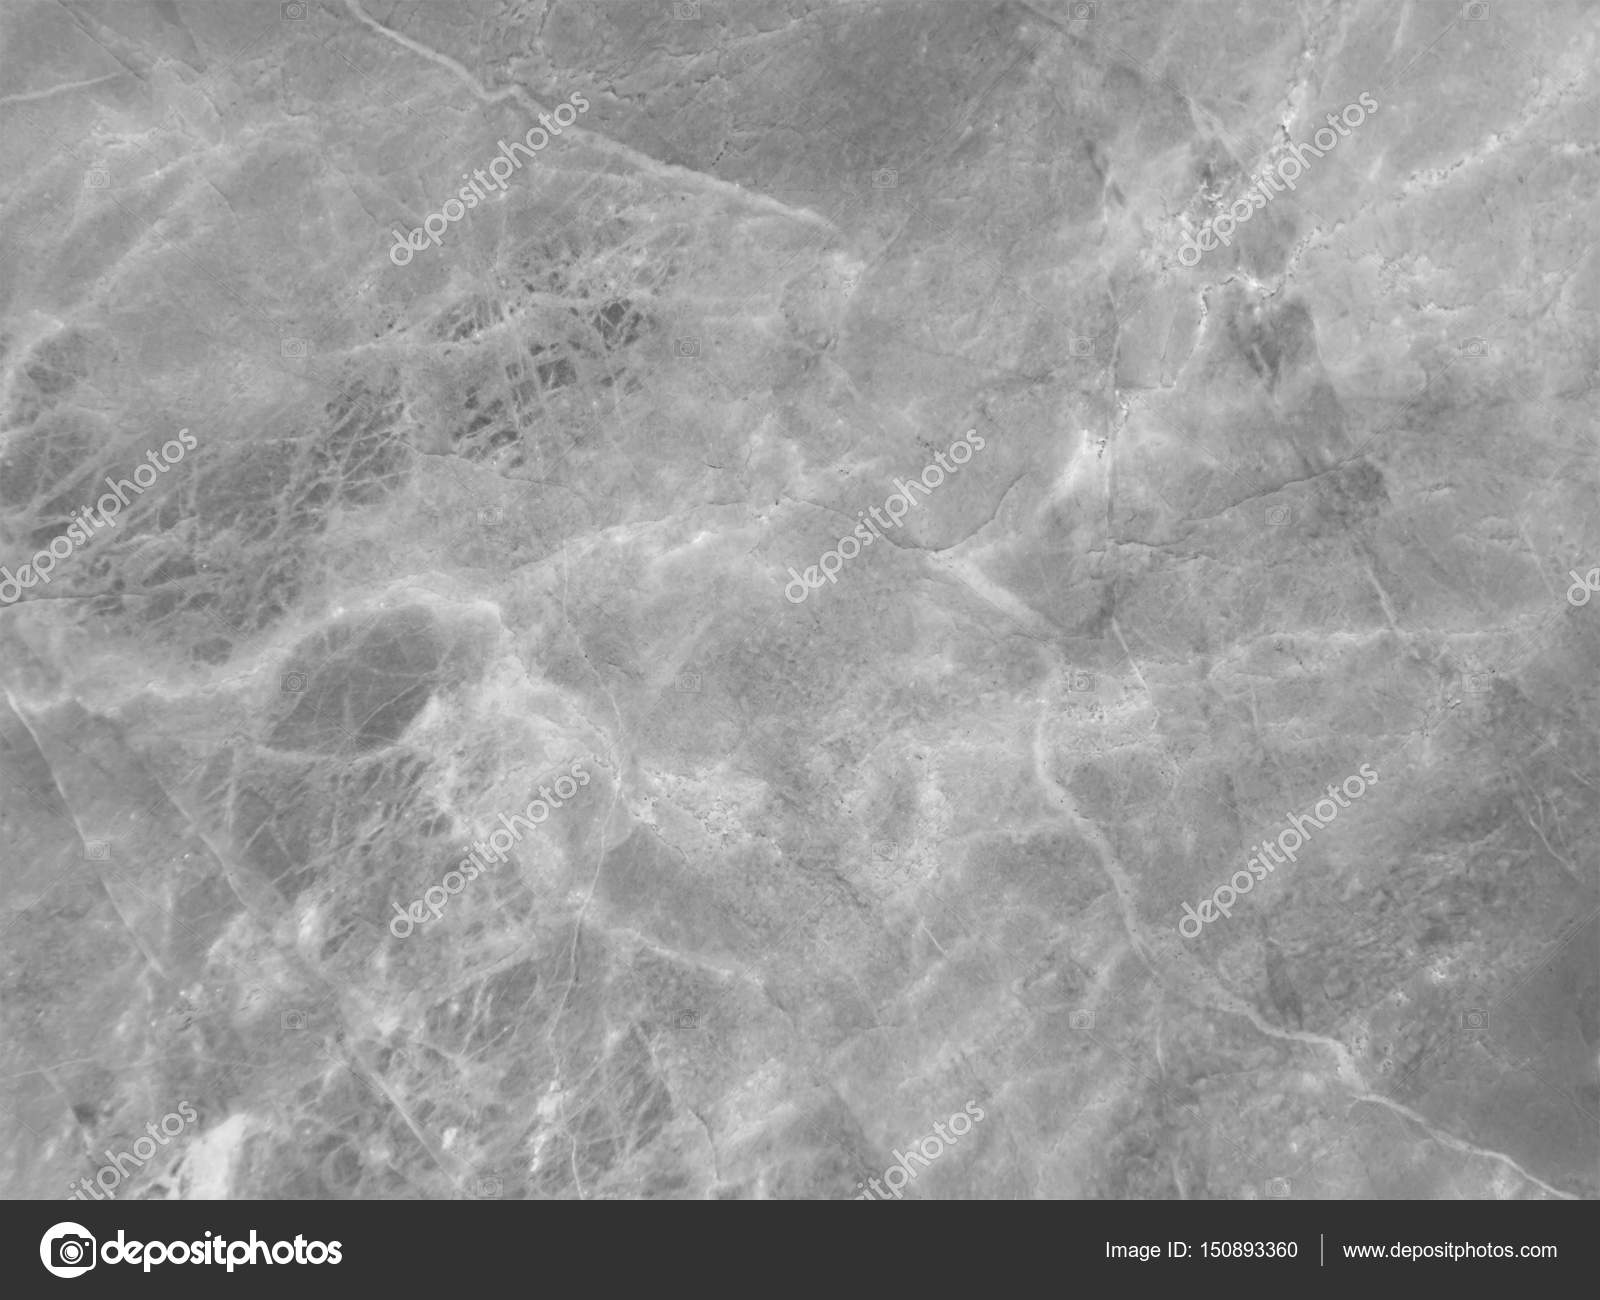 Amazing Wallpaper Marble Text - depositphotos_150893360-stock-photo-white-gray-marble-texture-pattern  Perfect Image Reference_656945.jpg